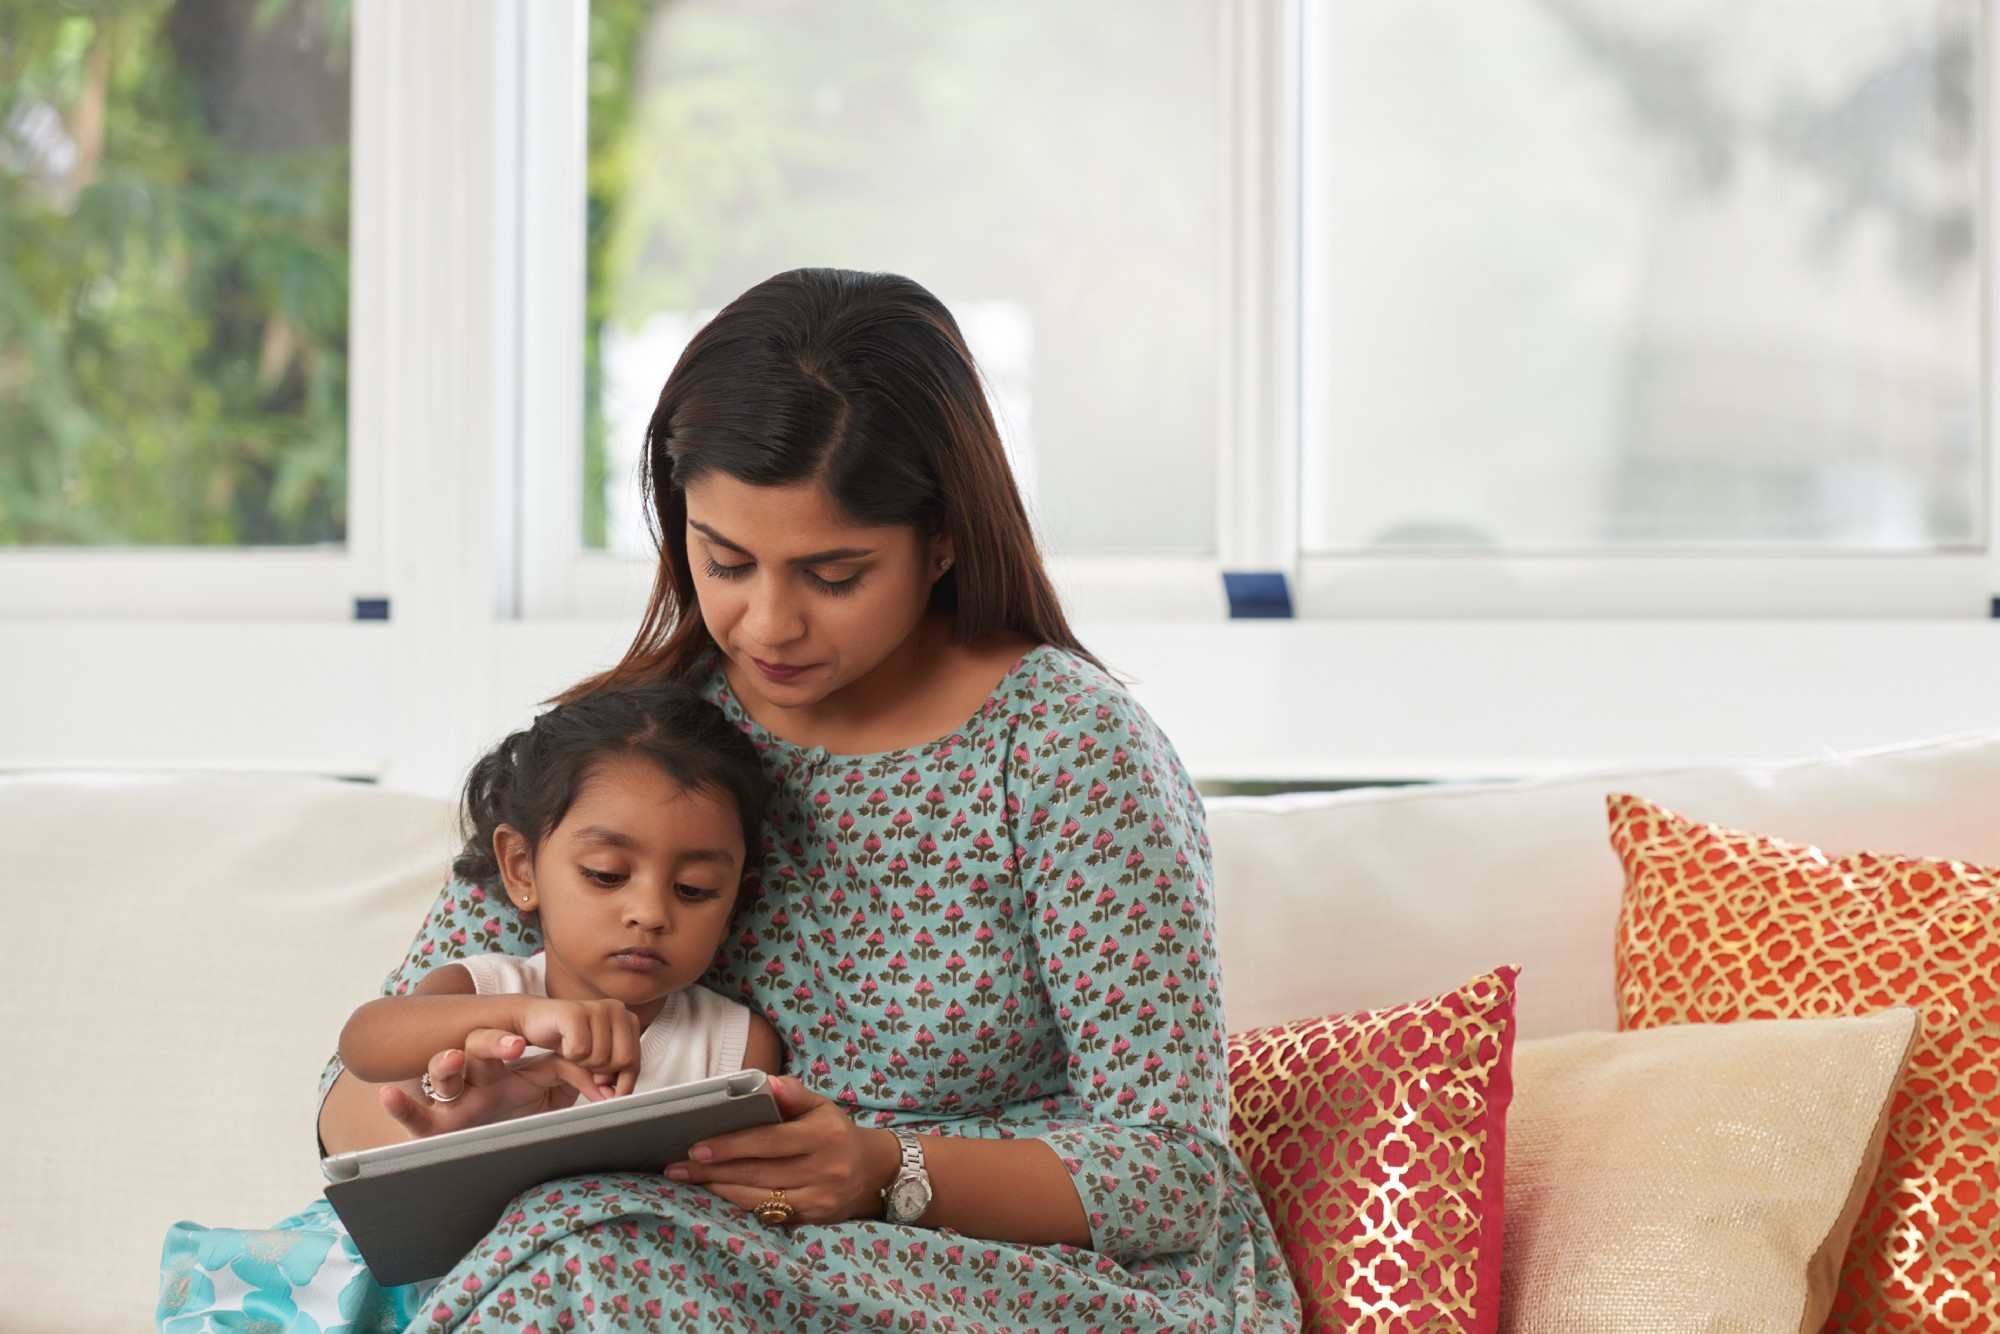 A mother holds her young daughter while they read together.